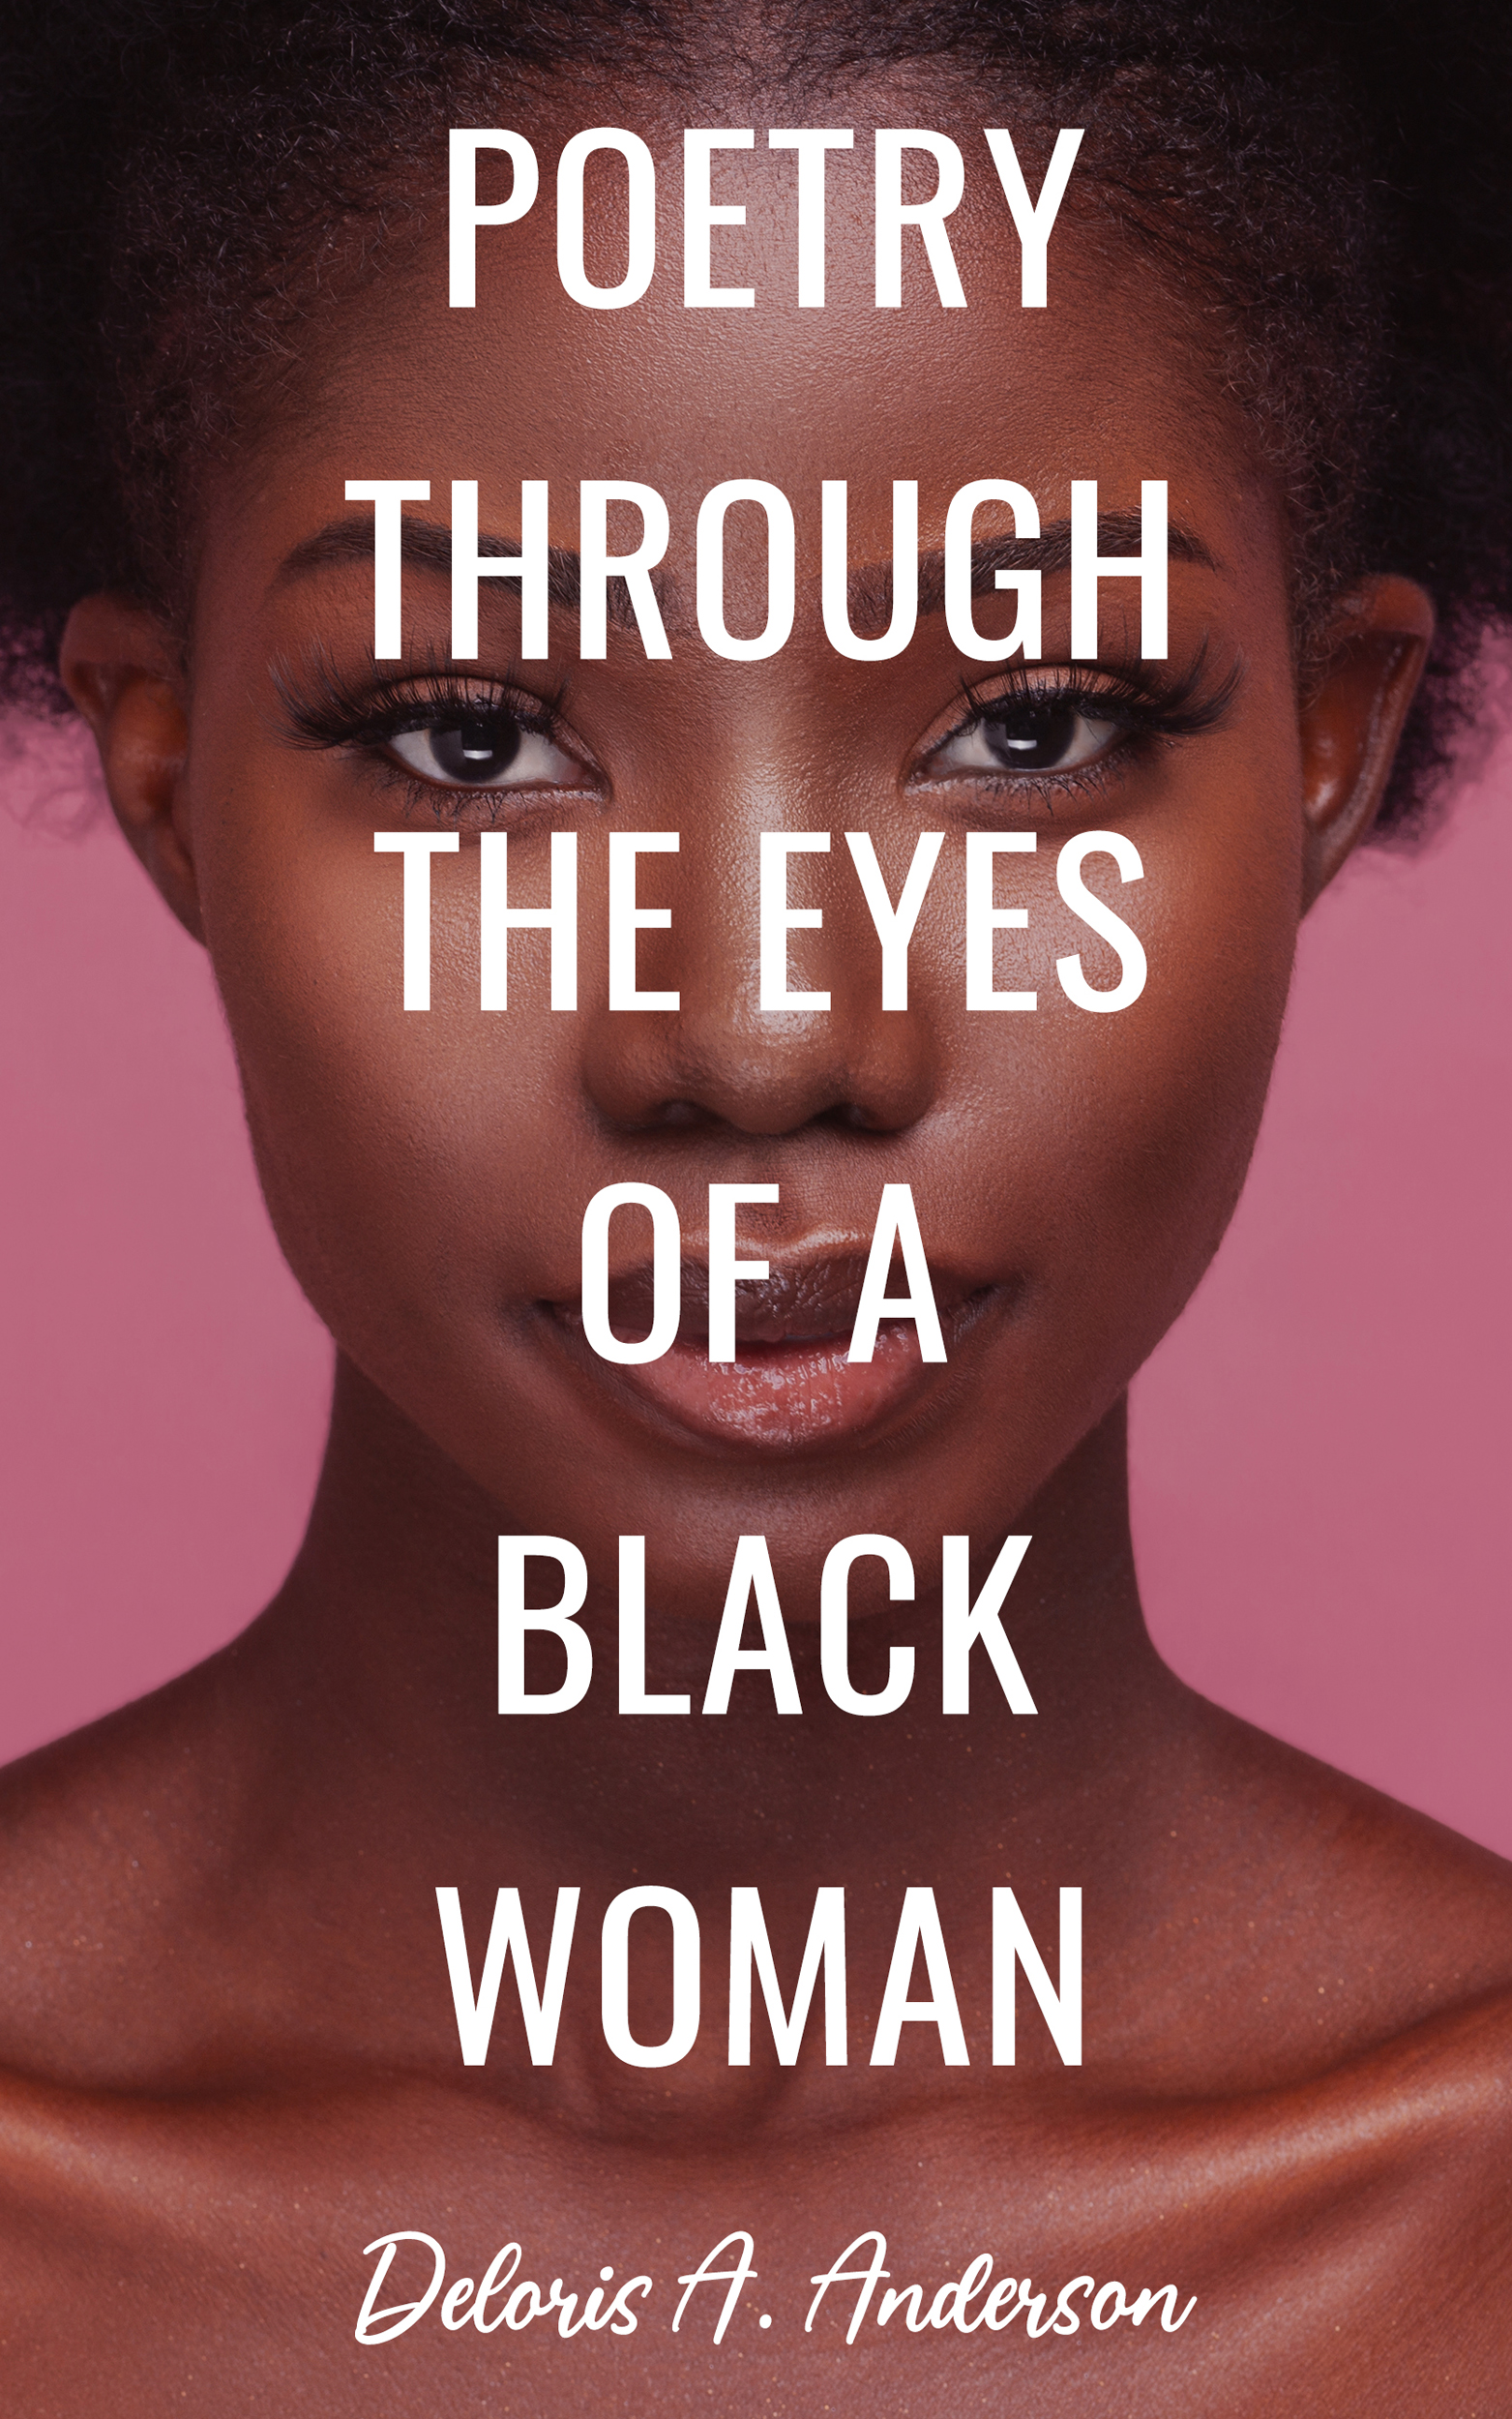 Poetry Through The Eyes of a Black Woman